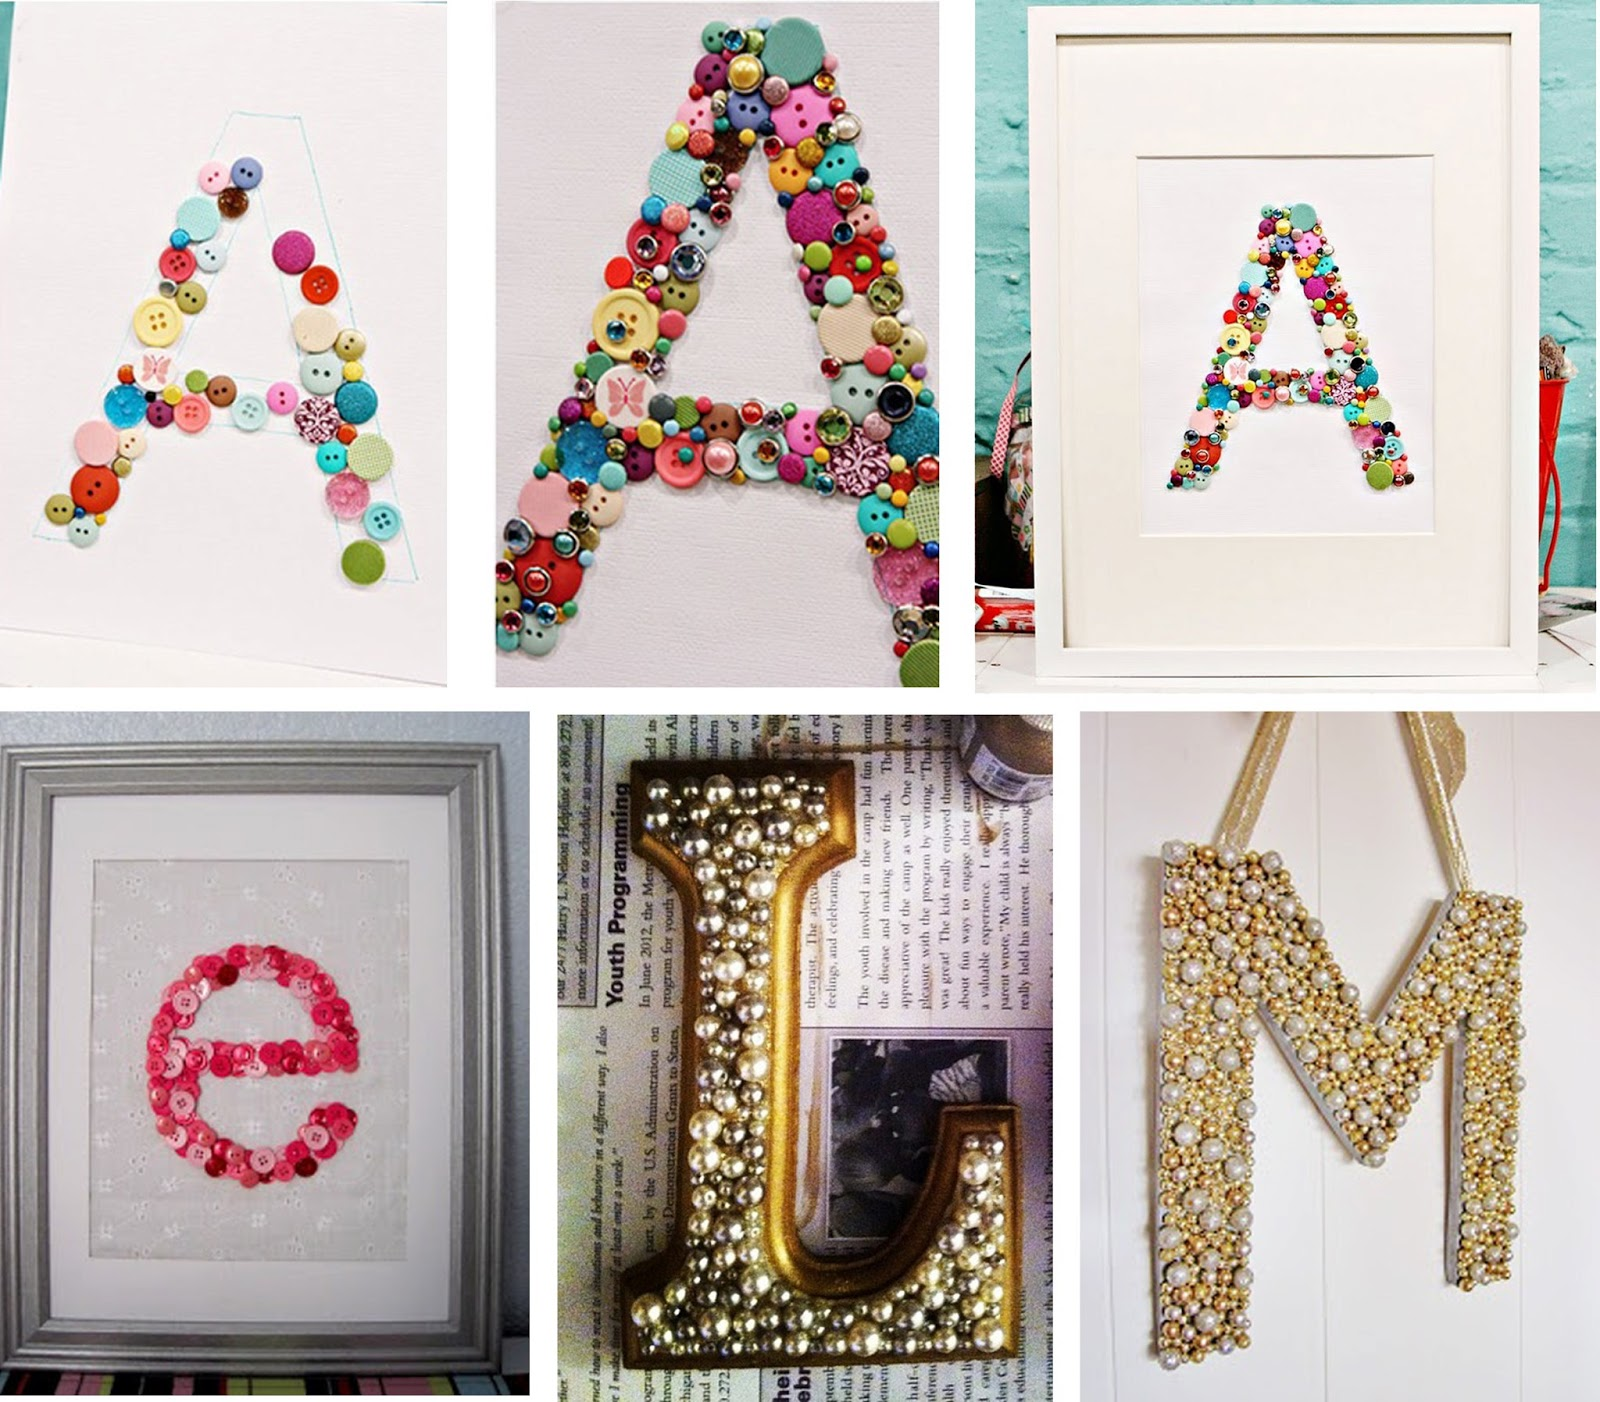 Decoracion letras home - Letras scrabble para decorar ...